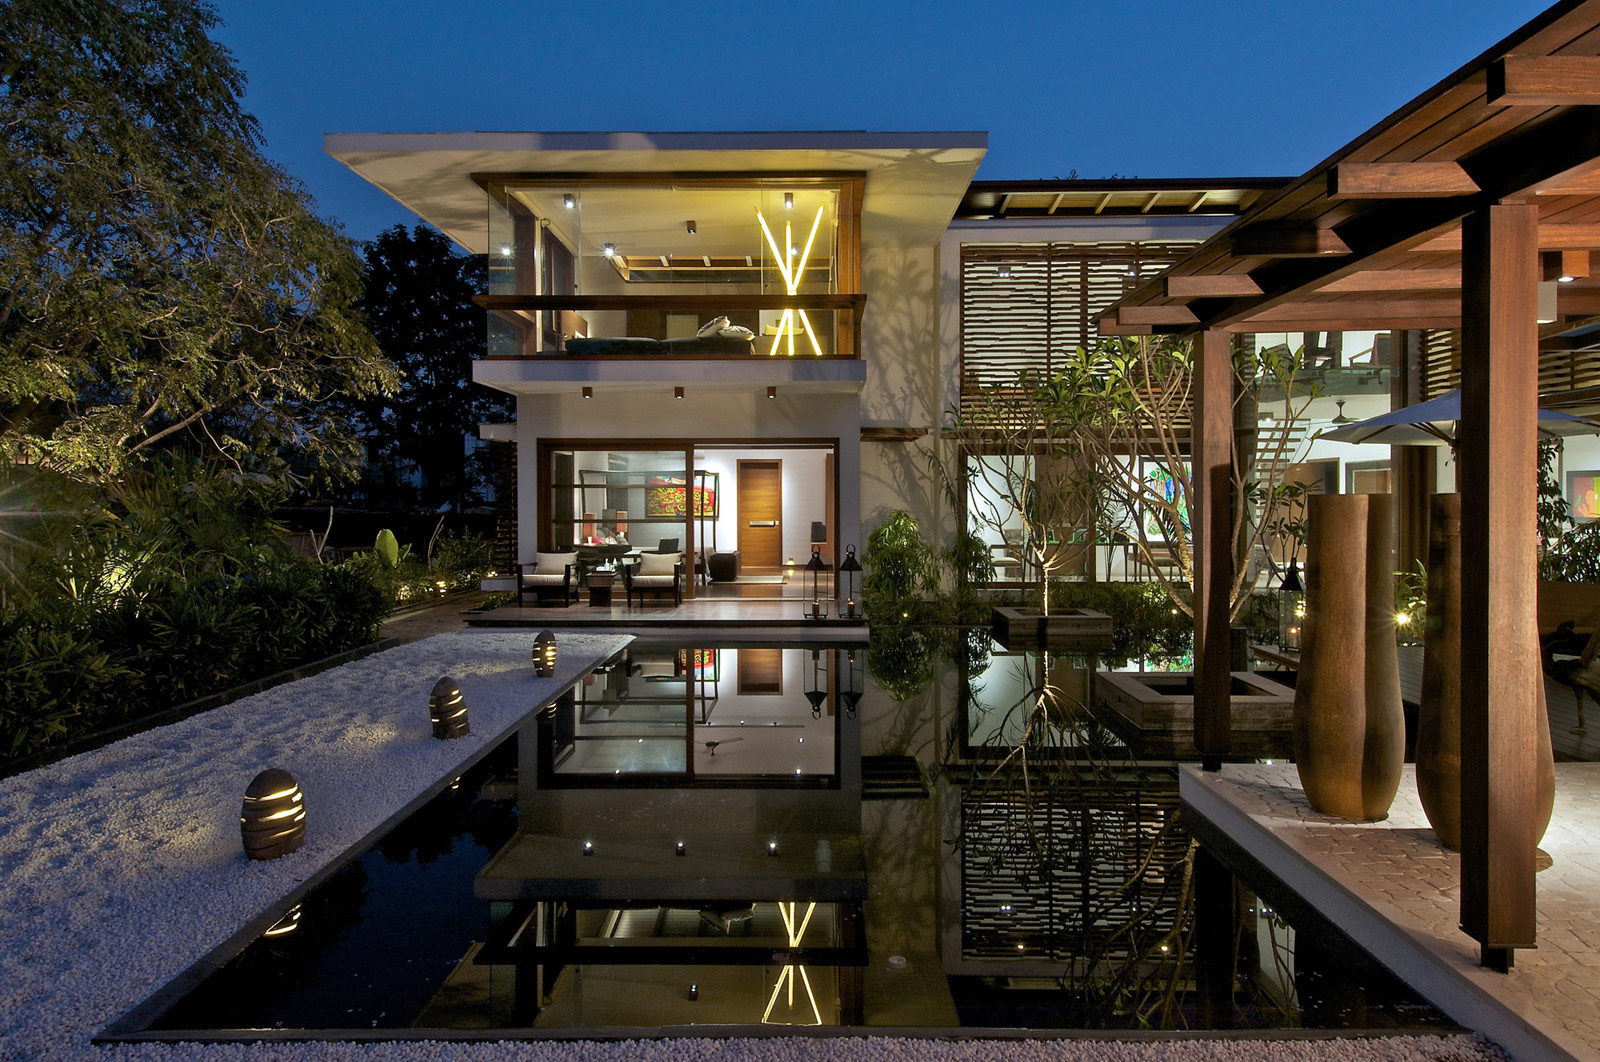 Timeless Contemporary House In India With Courtyard Zen Garden on Small Modern Garden Design